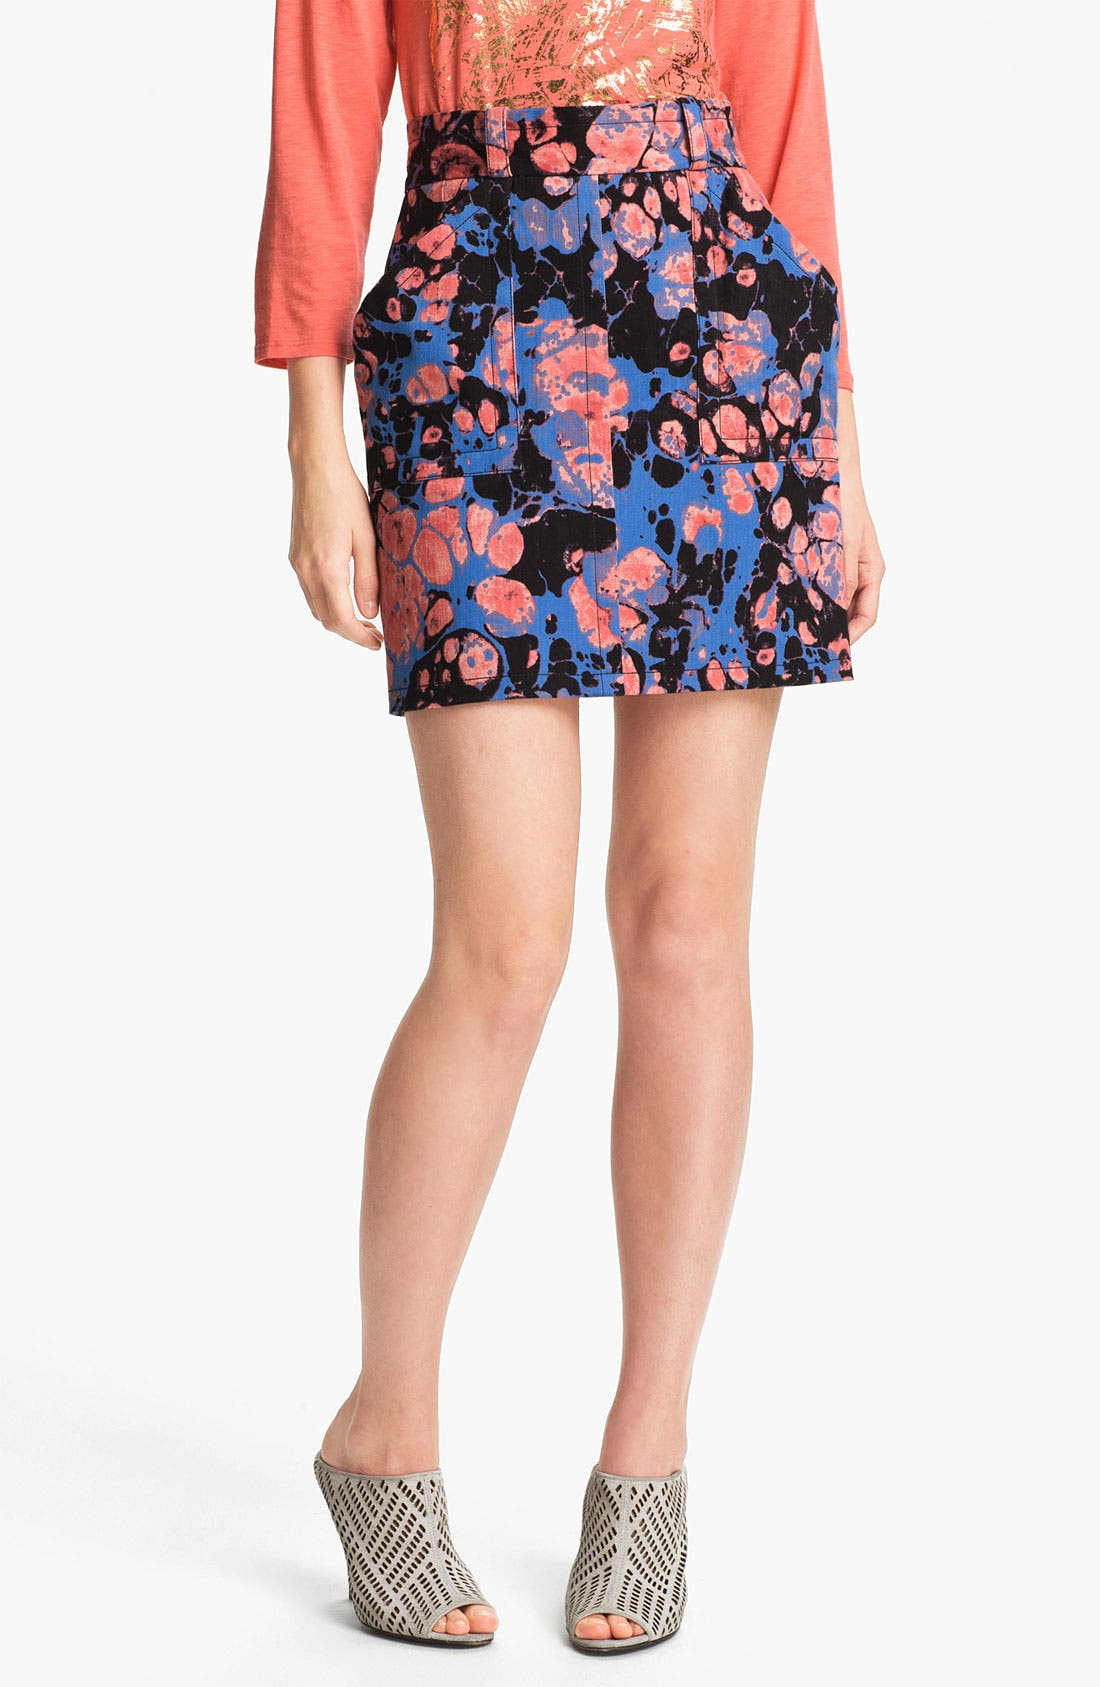 Main Image - Kelly Wearstler 'Phenomena' Skirt